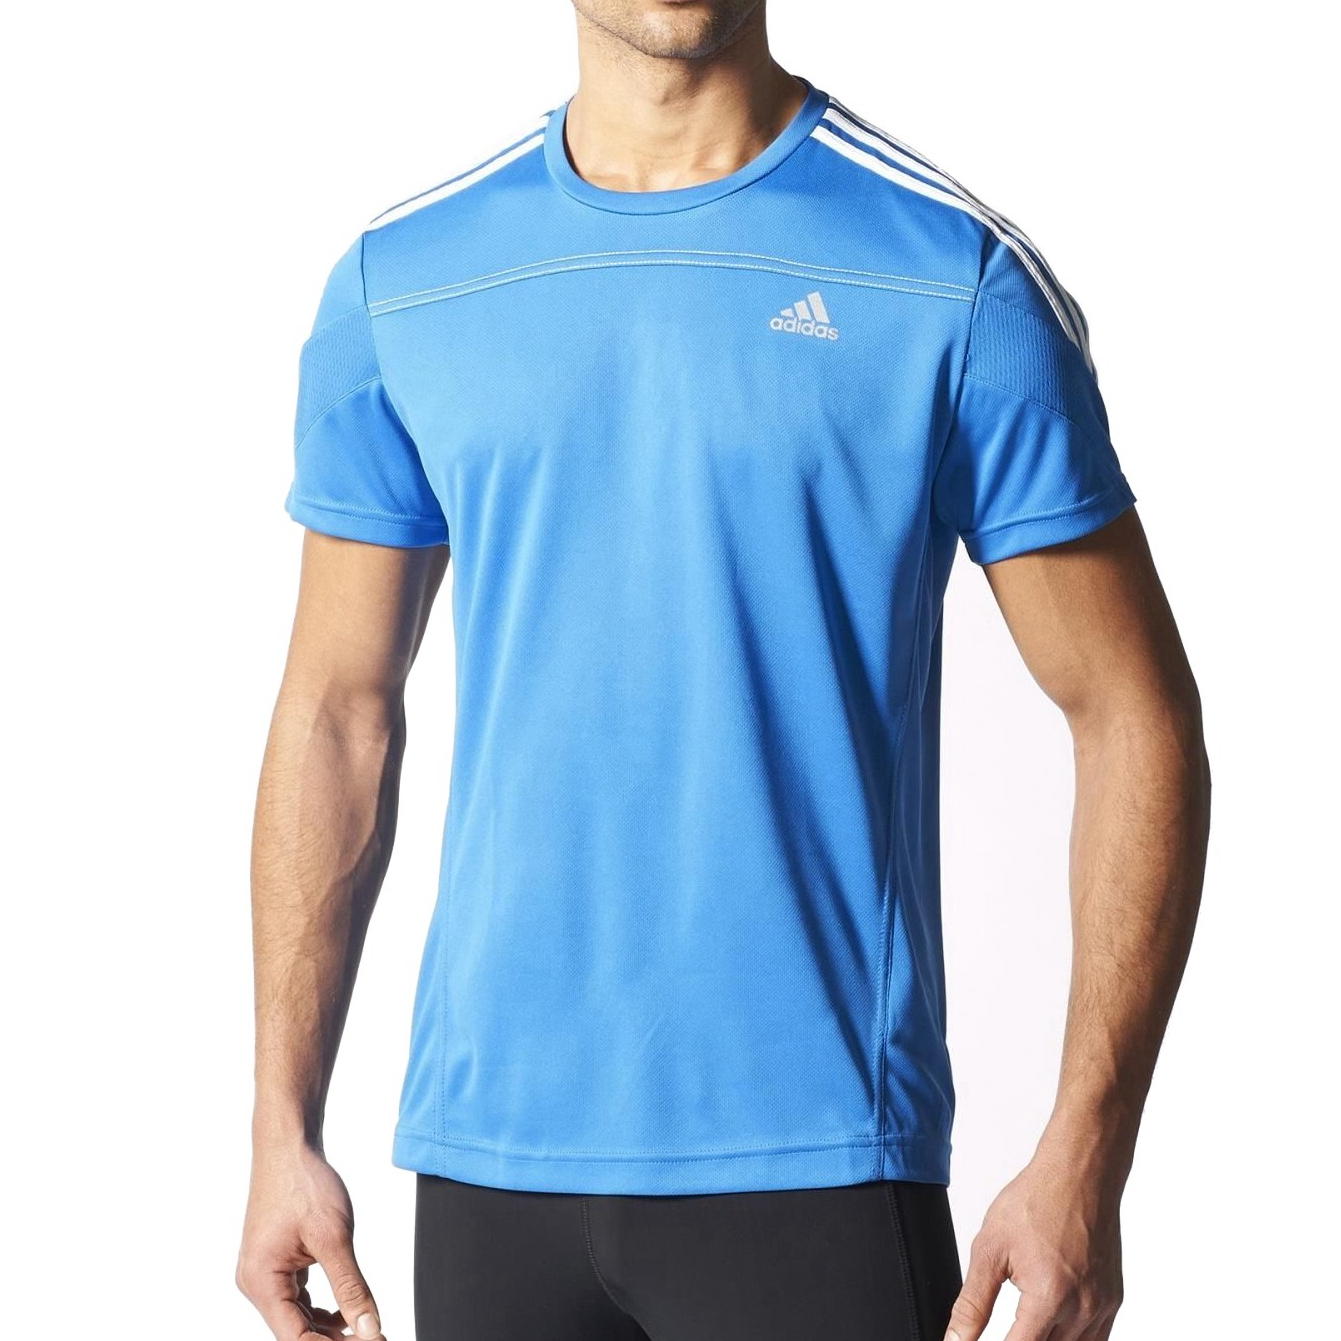 Find Men's Running Tops & T-Shirts at reformpan.gq Enjoy free shipping and returns with NikePlus.